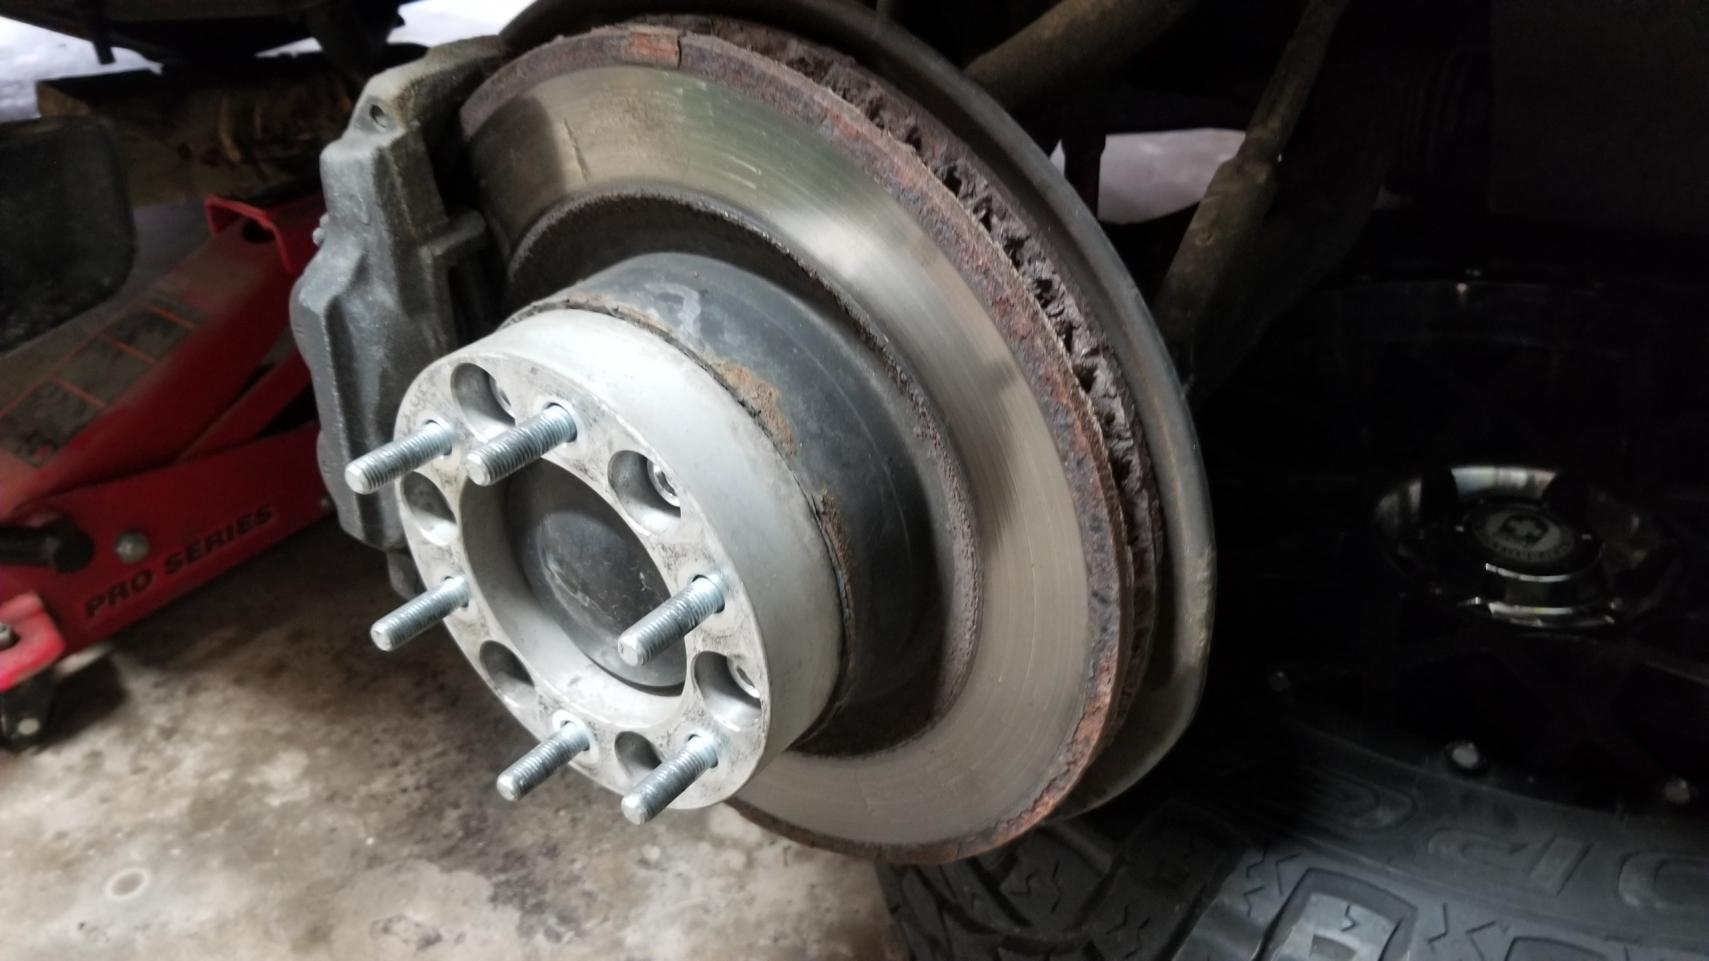 Front rotors, not looking good...right?-15851707863551152290430508937574-jpg